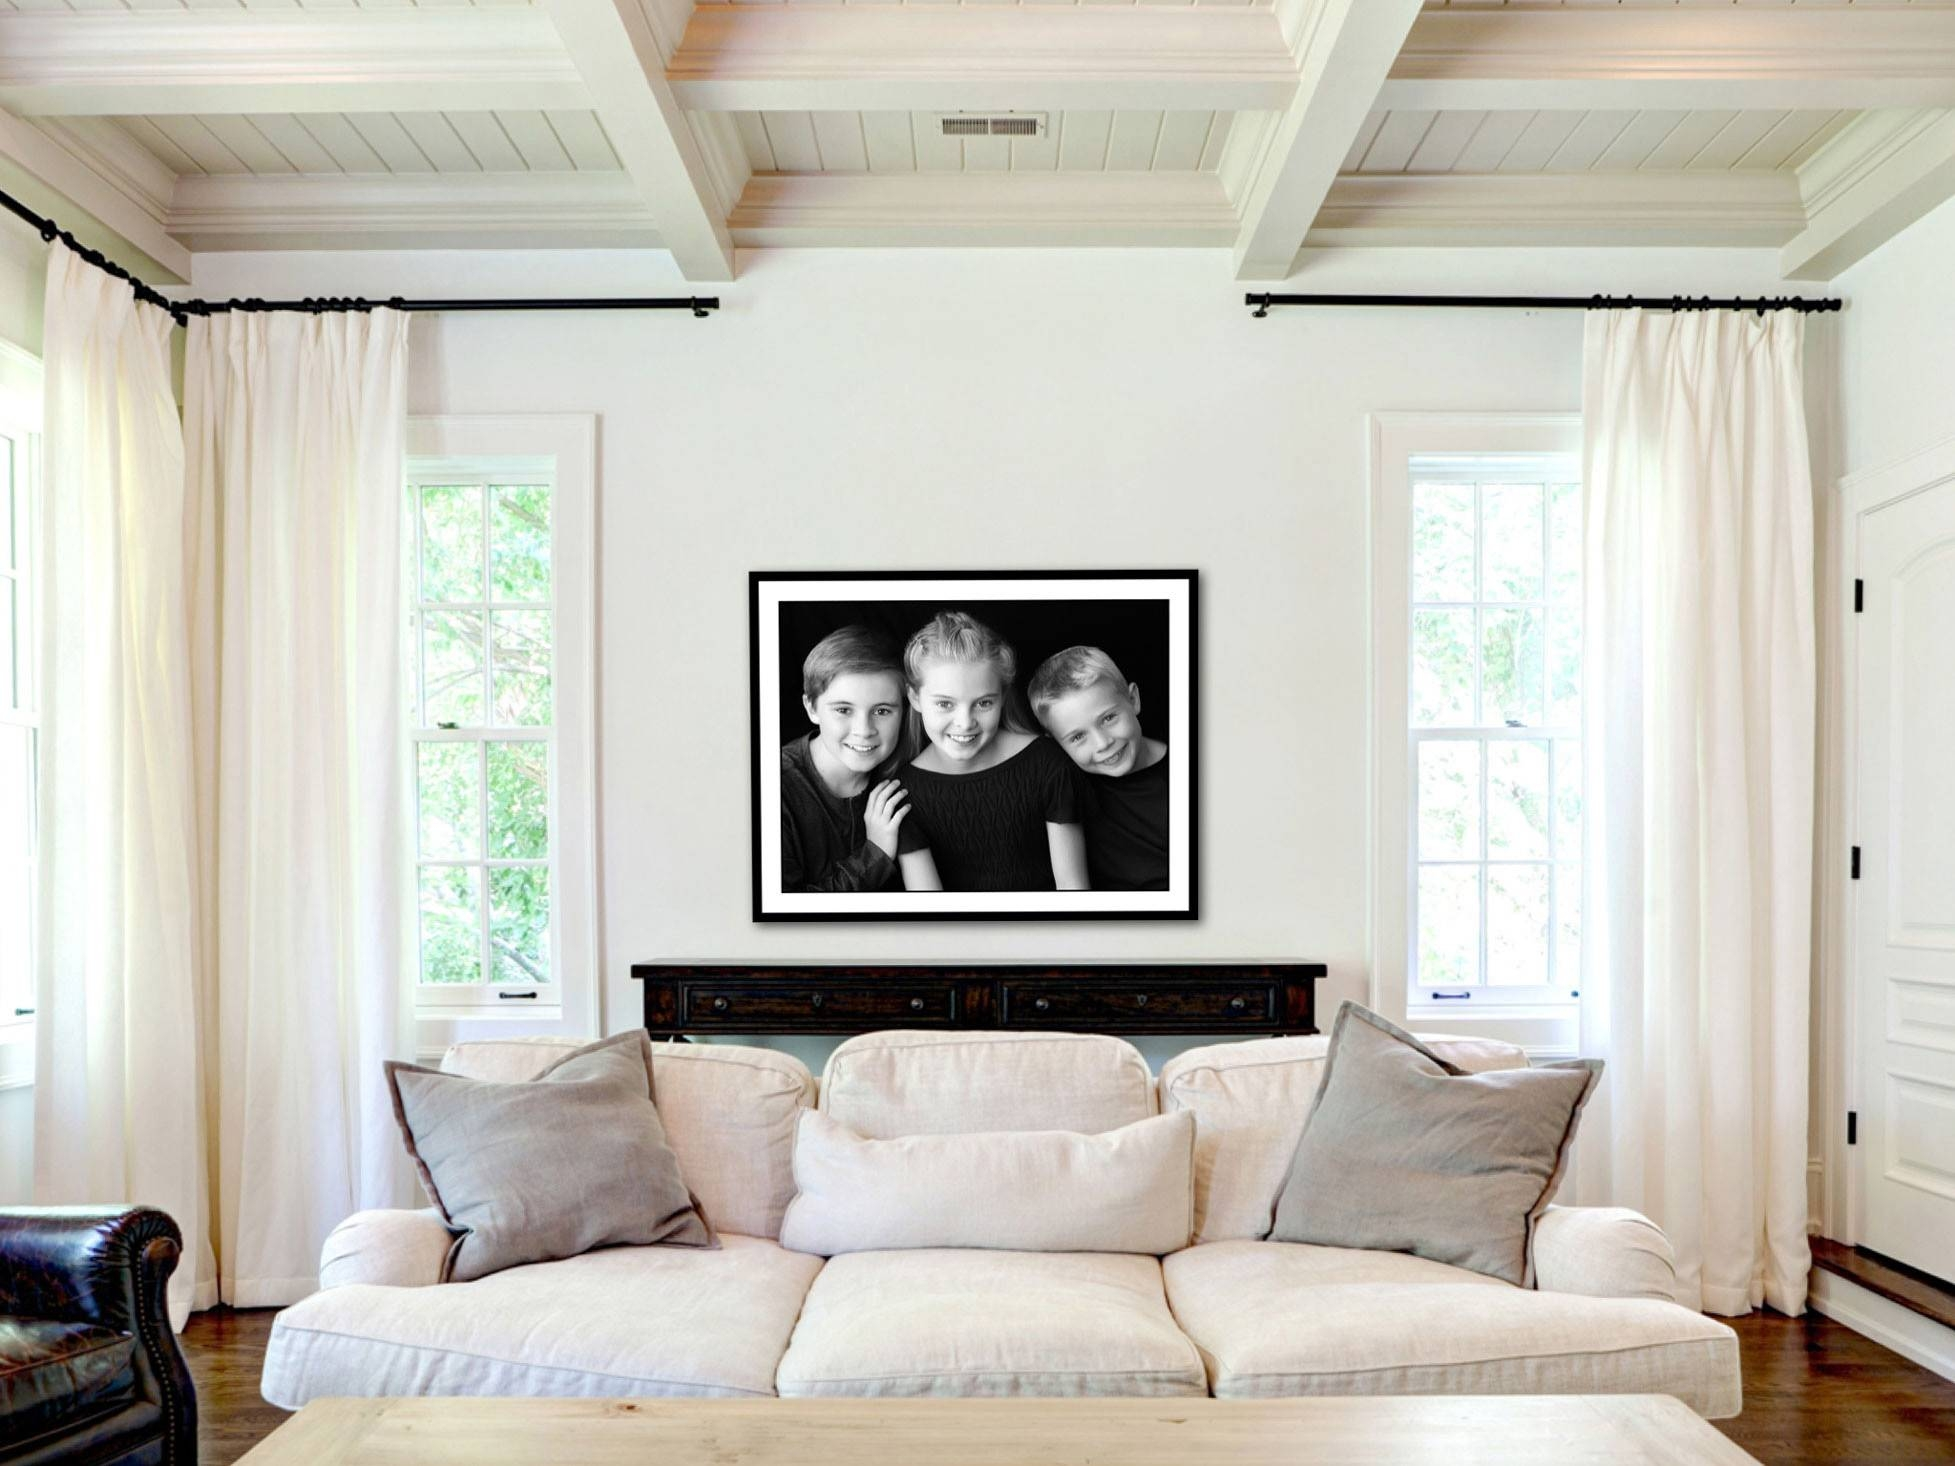 Black And White Photography Wall Art Ideas – In 2017 Photography Wall Art (View 5 of 25)